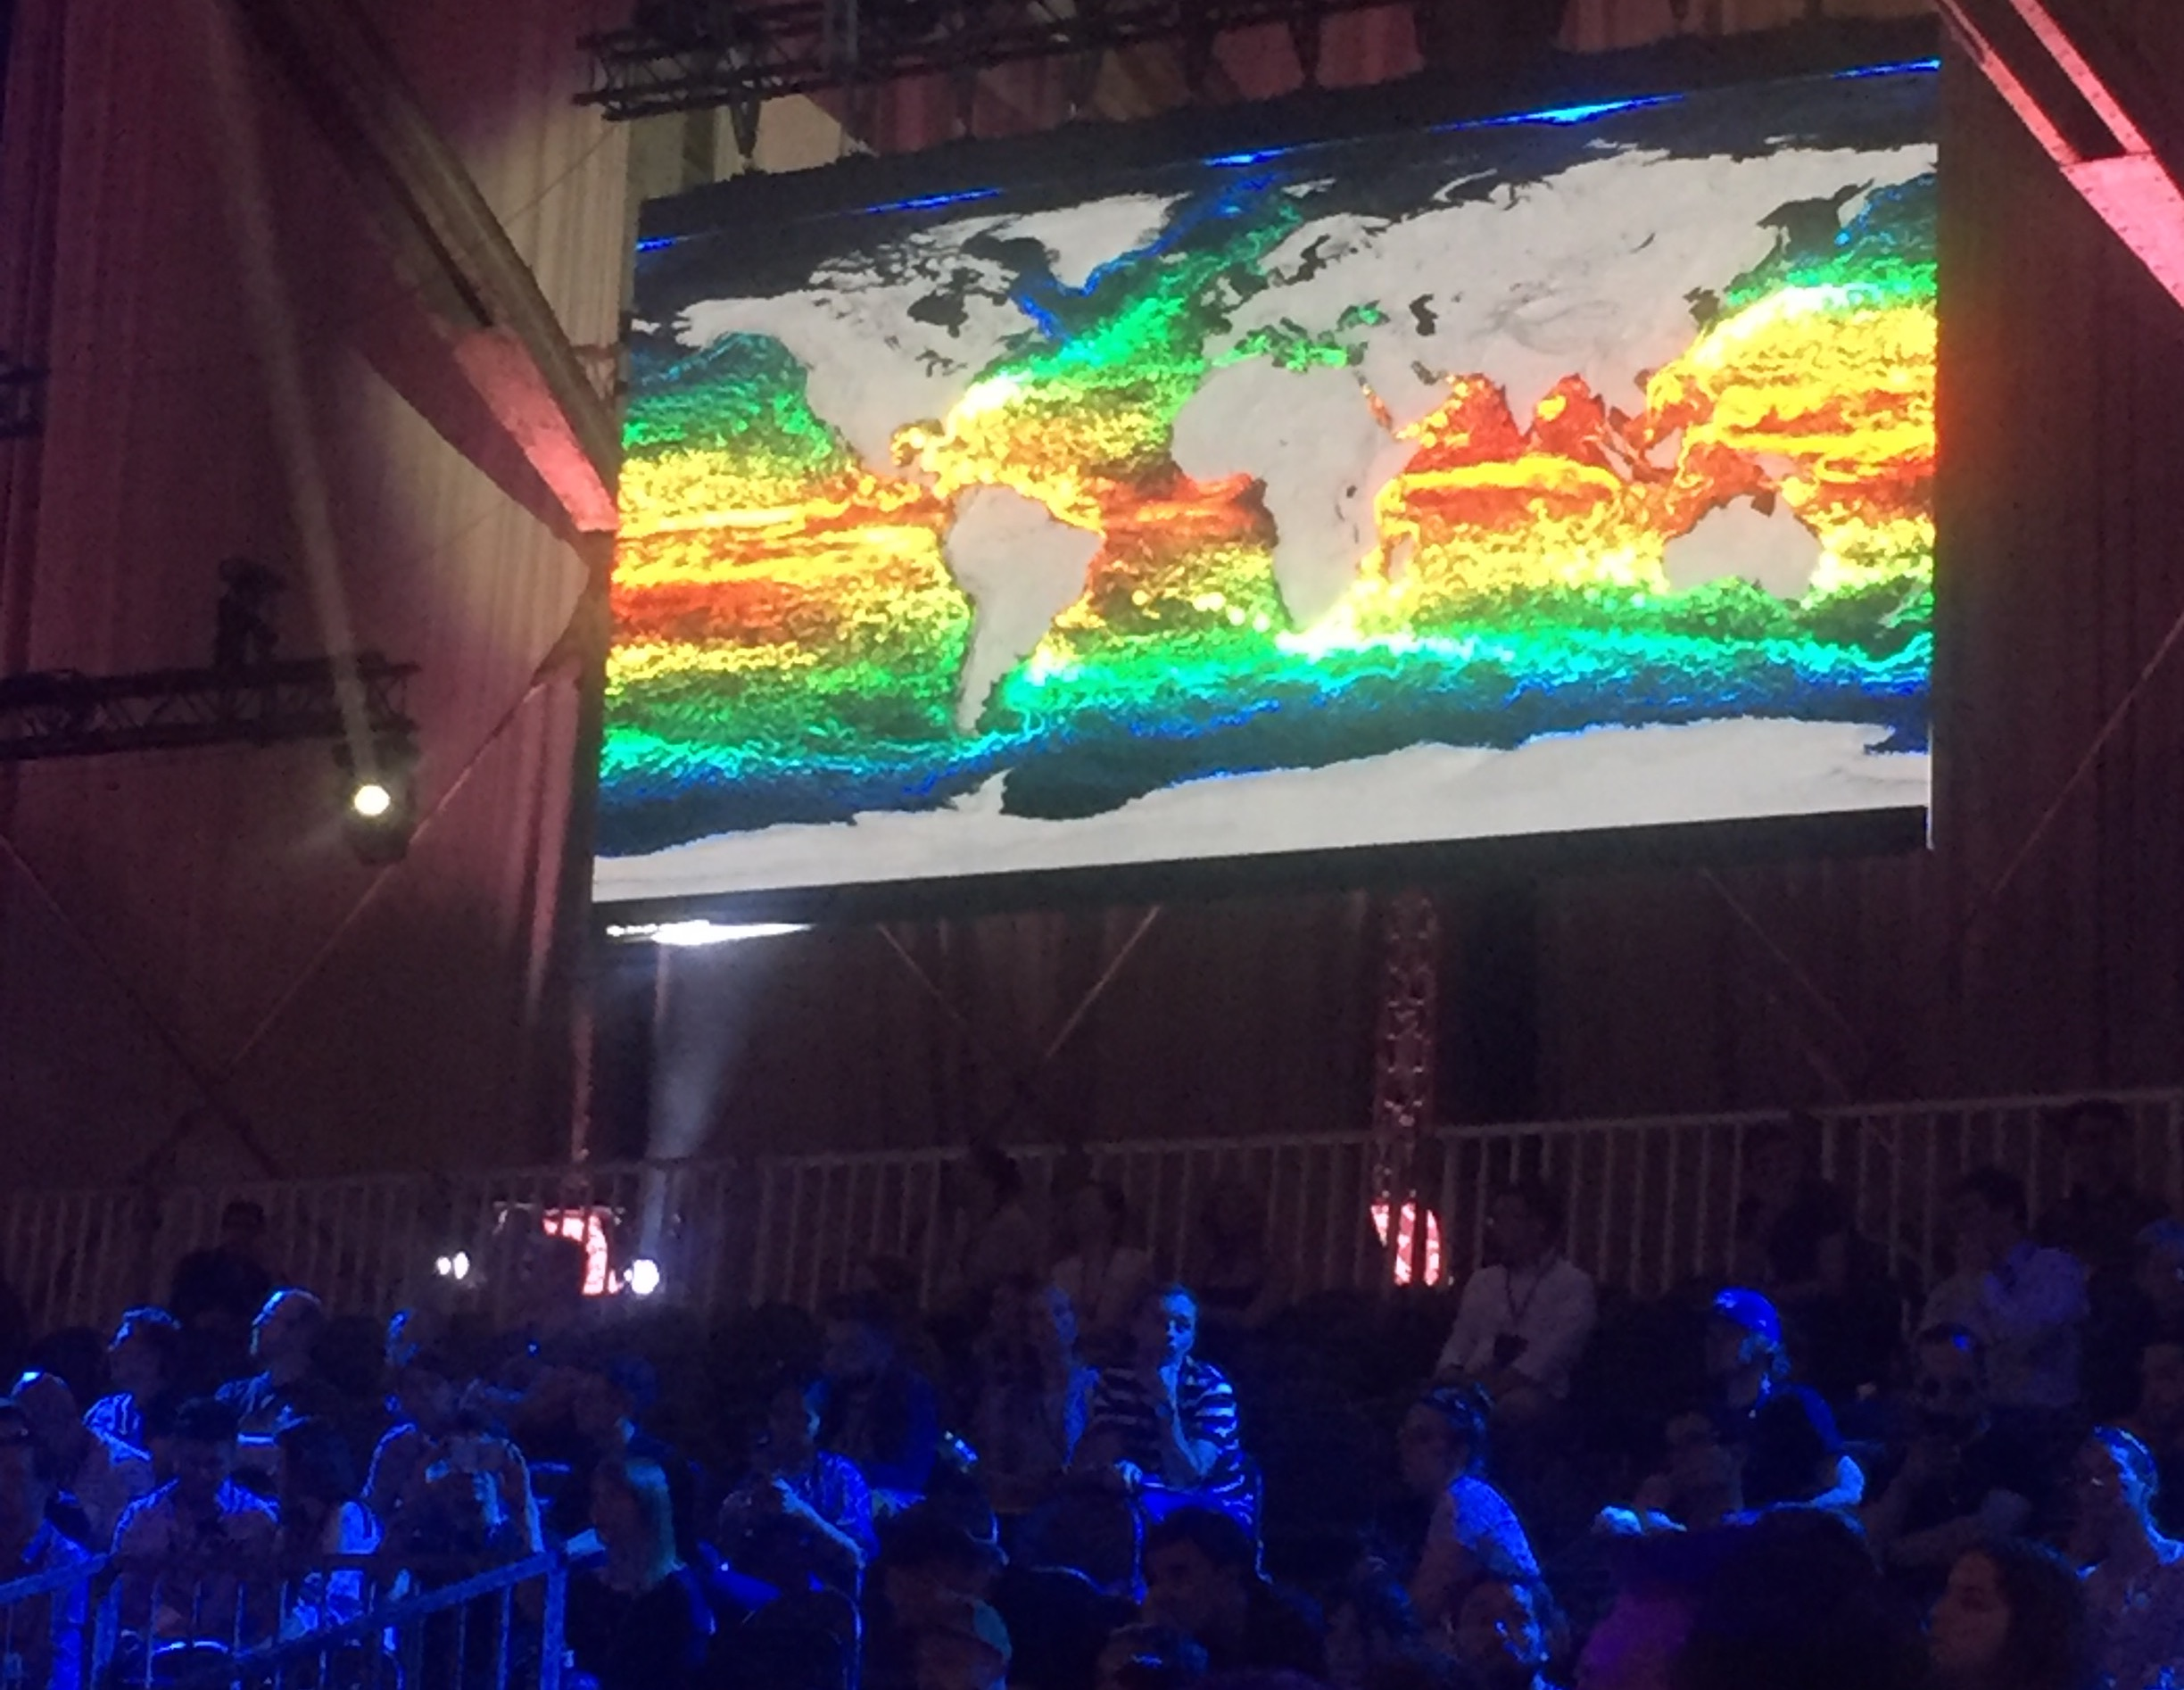 Image of heat map of the world from space